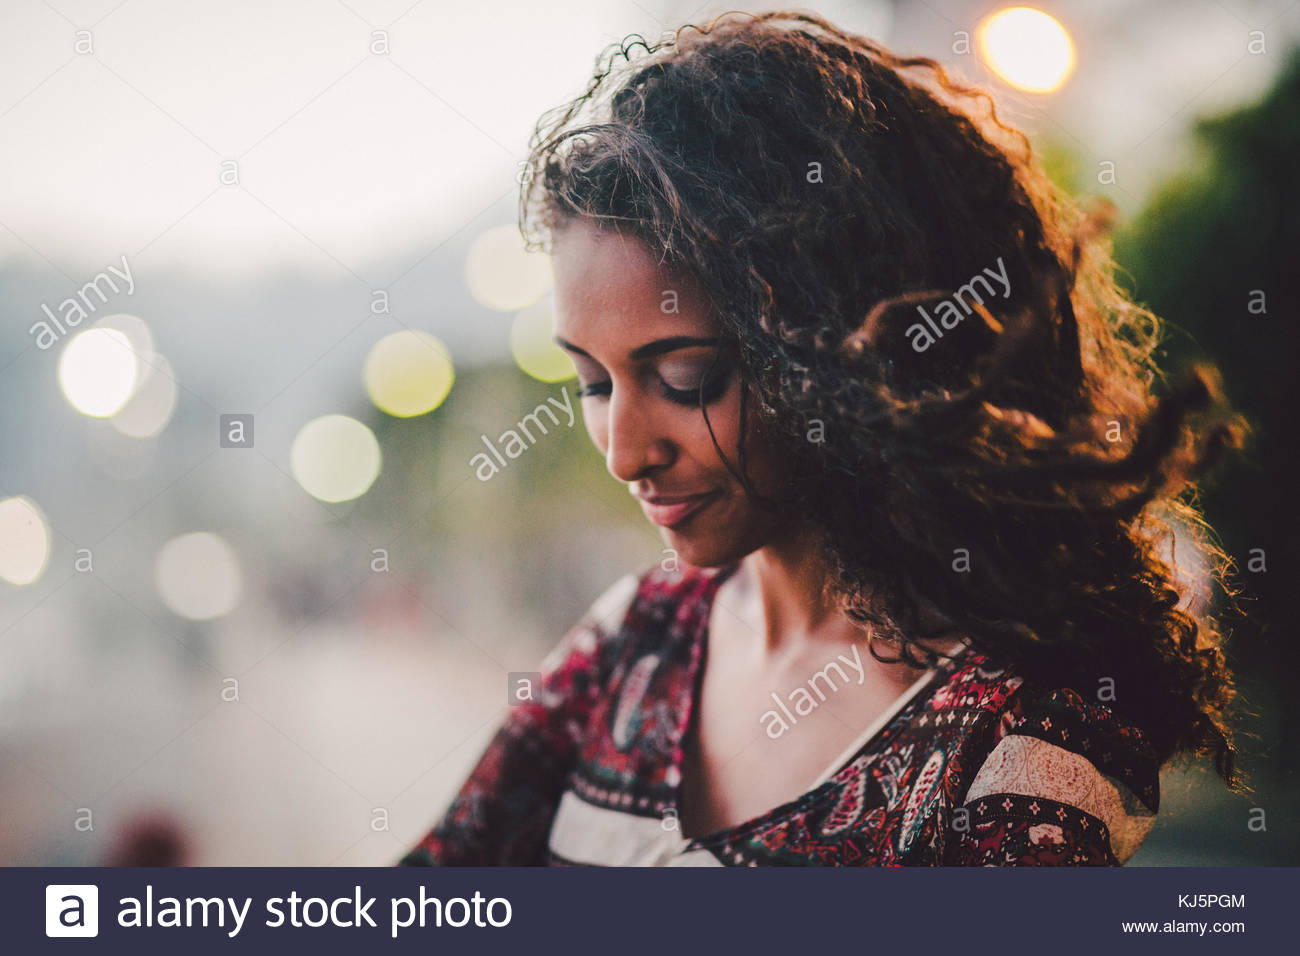 Beautiful portrait of a black woman looking down - Stock Image